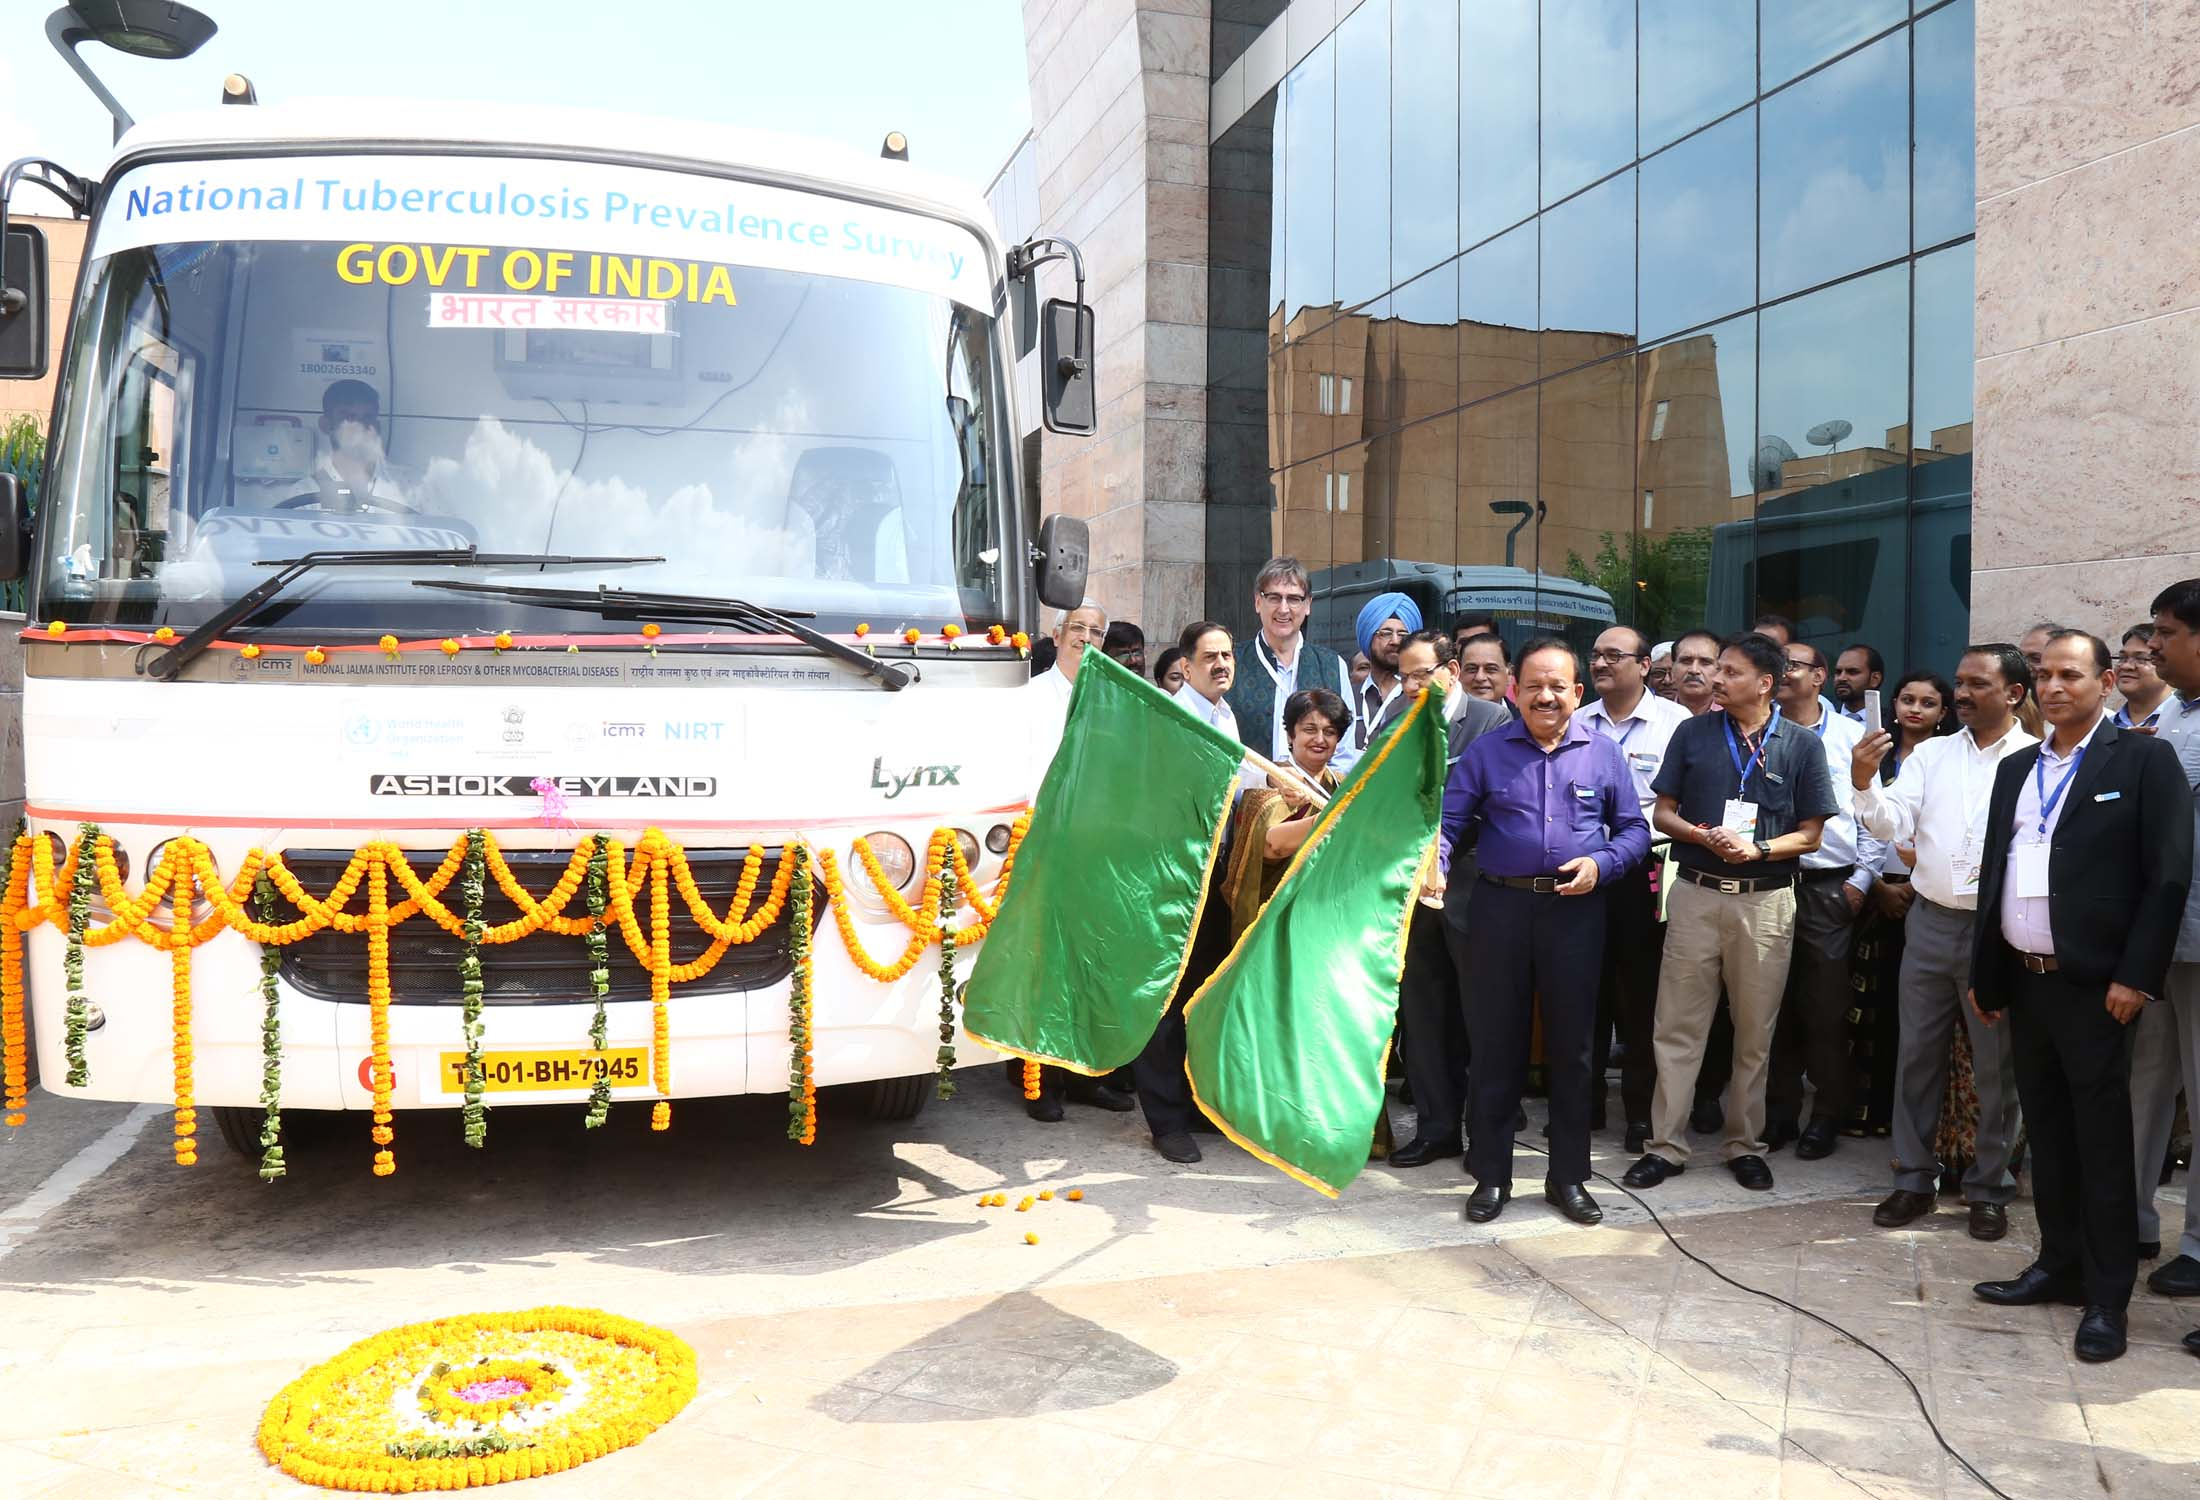 Hon'ble Minister of H&FM Dr. Harshvardhan , Secretary (HFW) Smt. Preeti Sudan Flagged off National TB Prevalence Vans